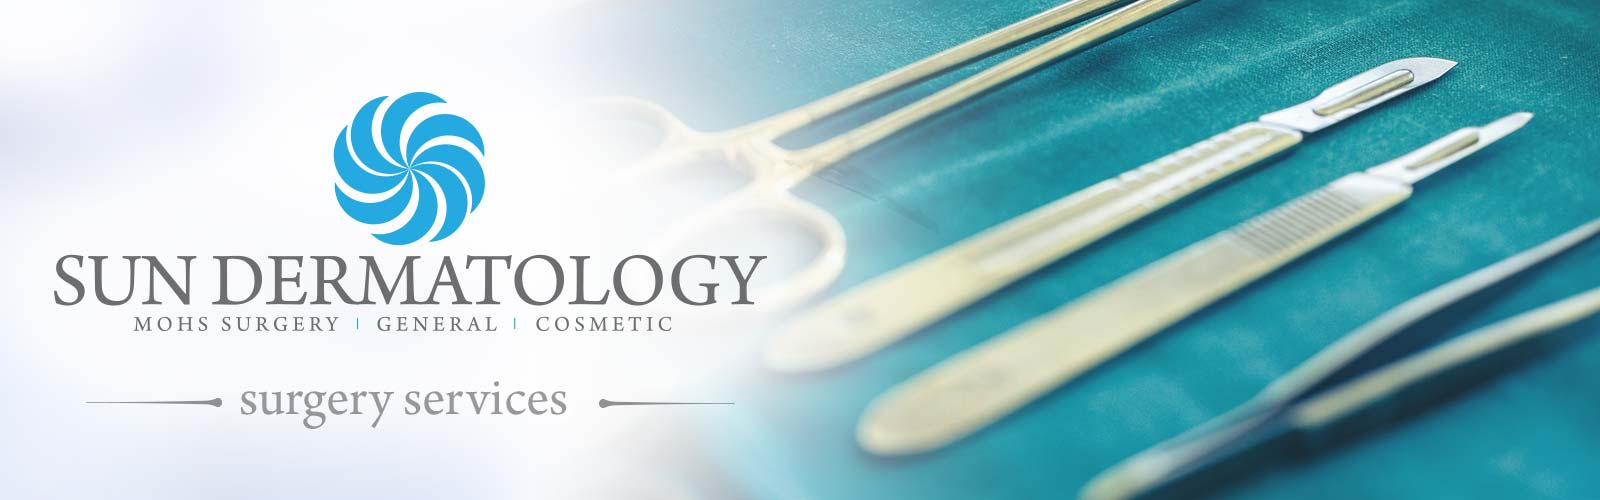 Surgery Services and Procedures at Sun Dermatology in Panama City, Florida